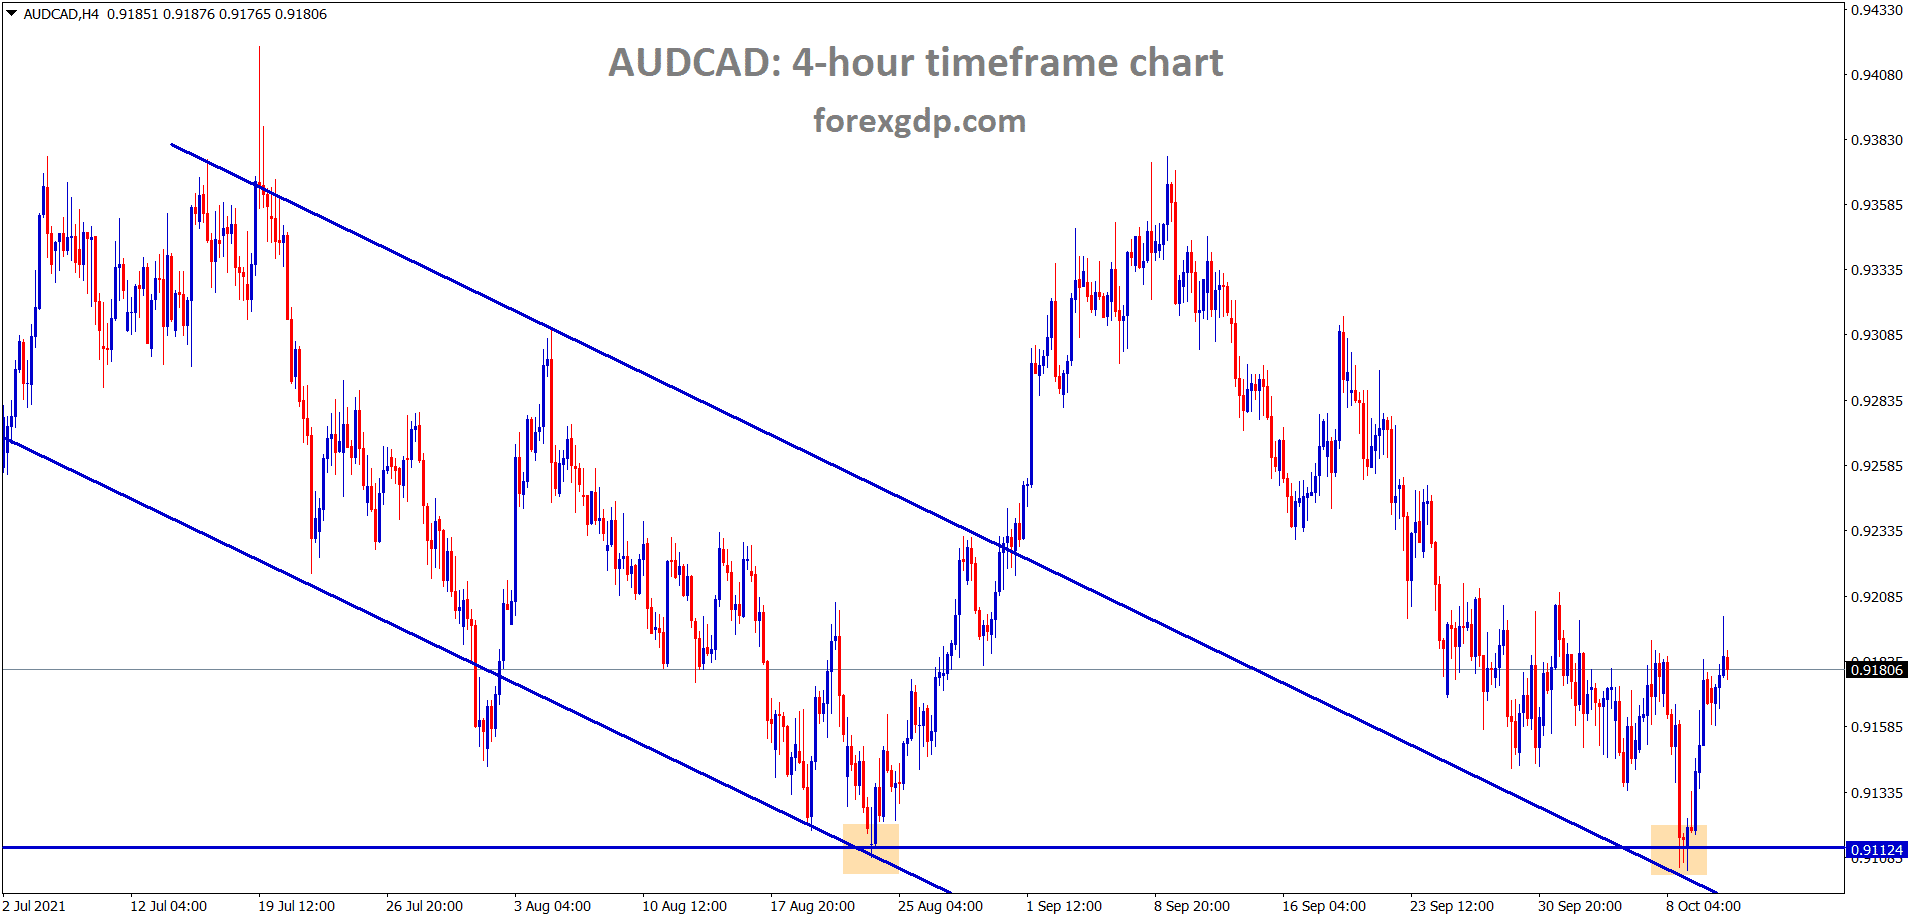 AUDCAD has retested the horizontal support and the previous descending channel area and rebounding from that zone